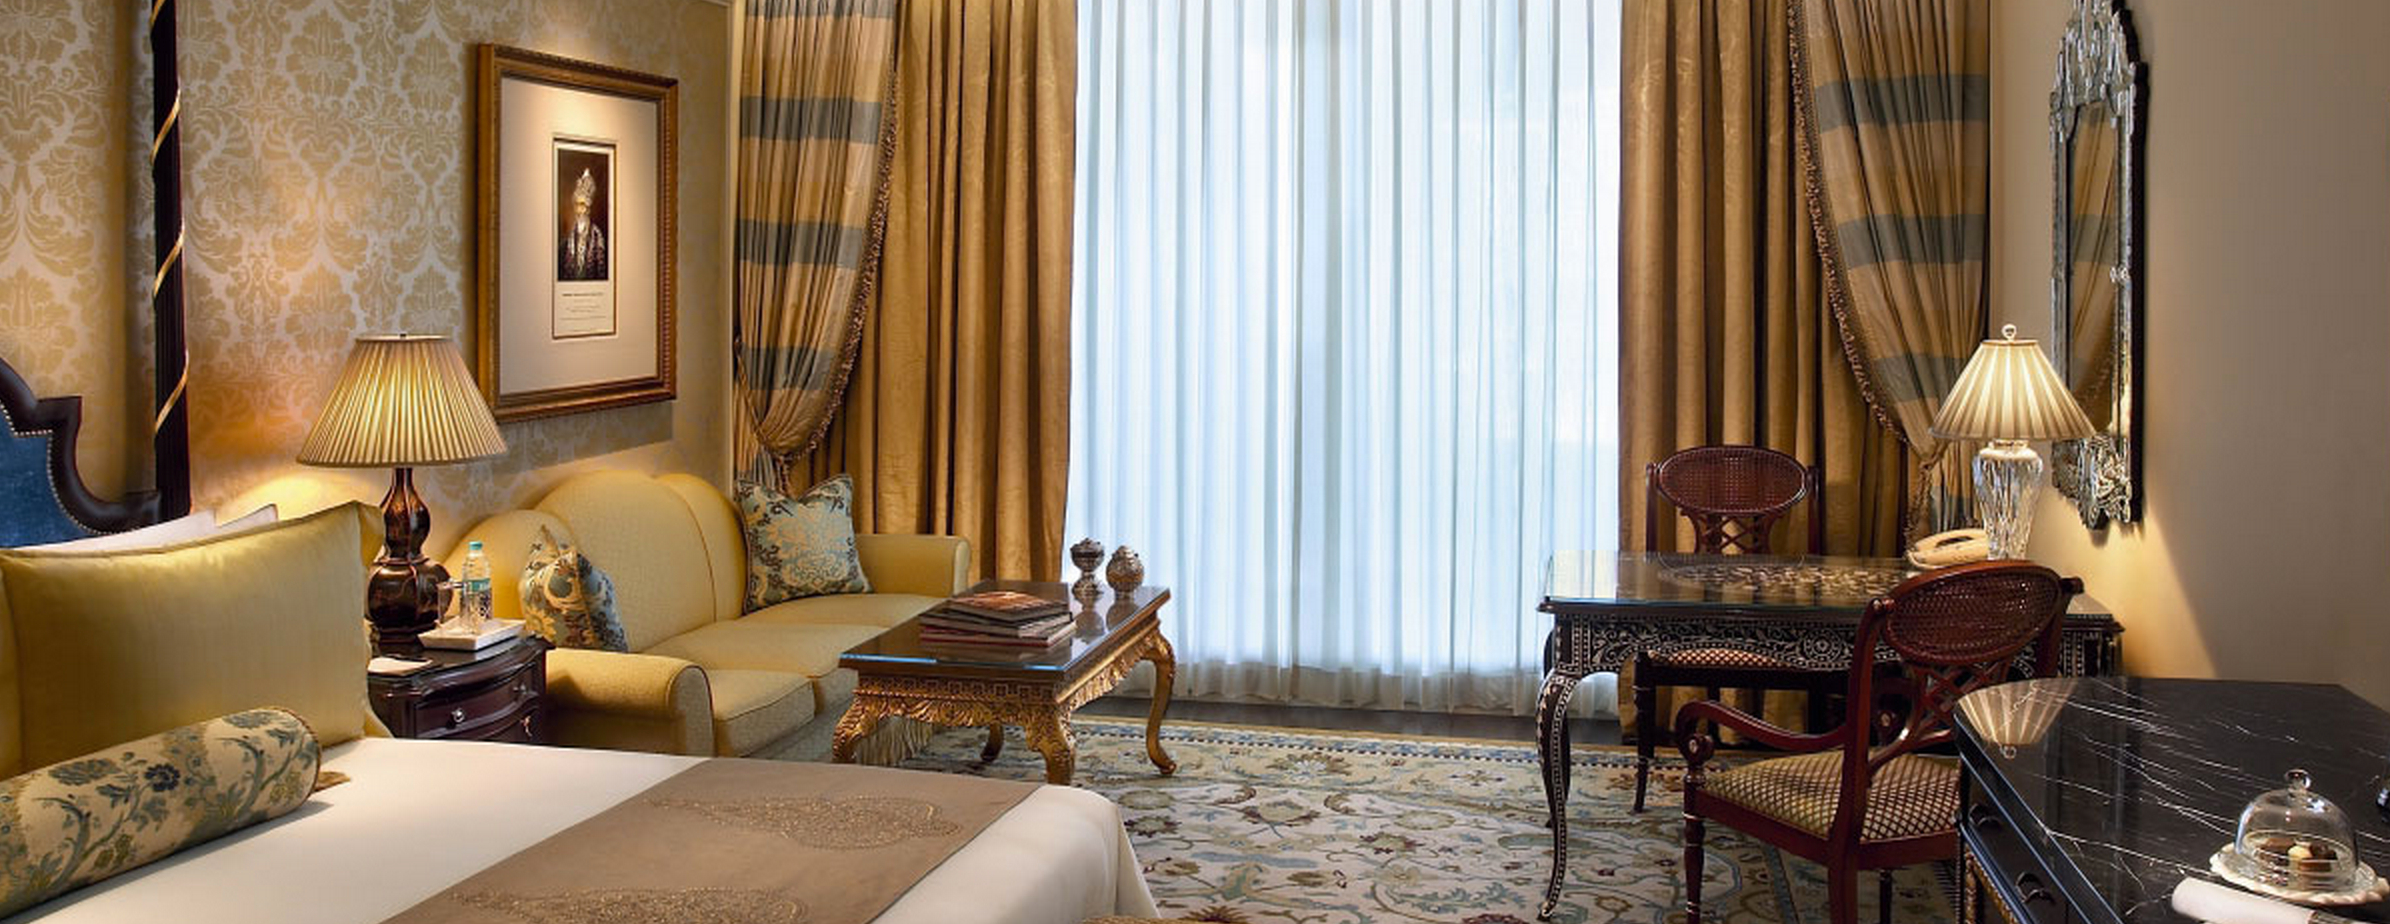 Leela Palace Delhi Room Rates